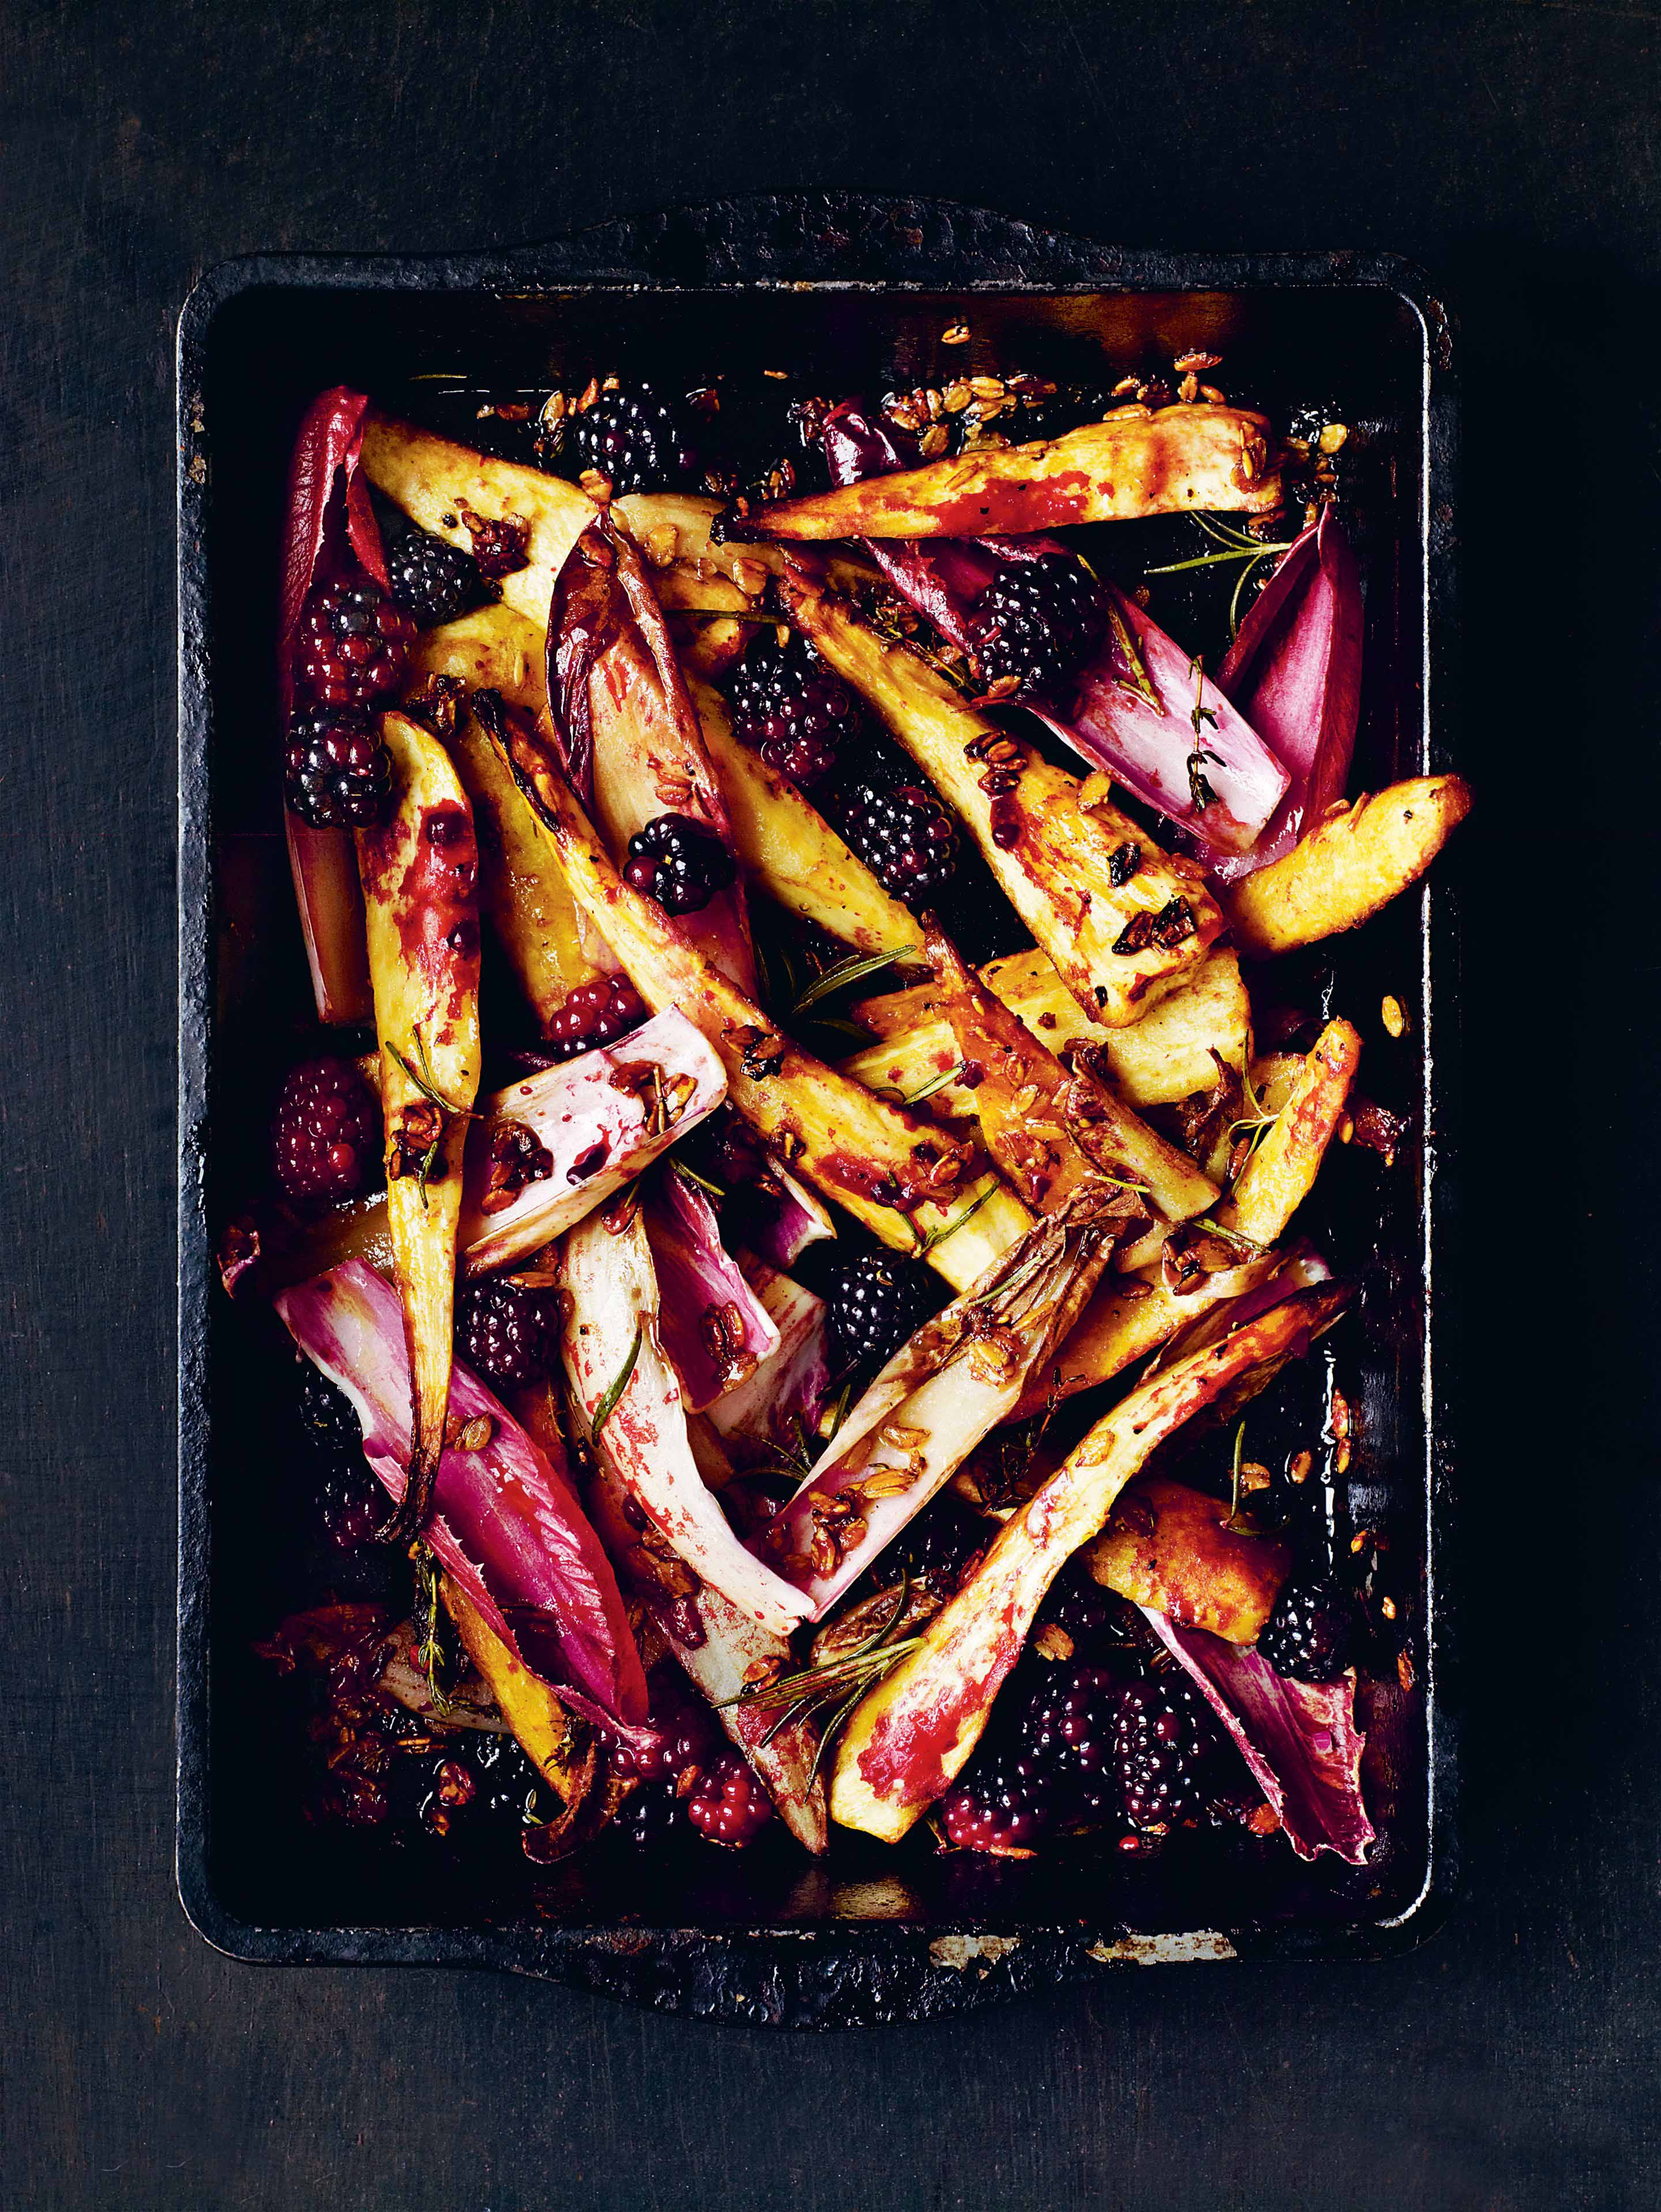 Roast parsnips with blackberries, honey chicory & rye flakes